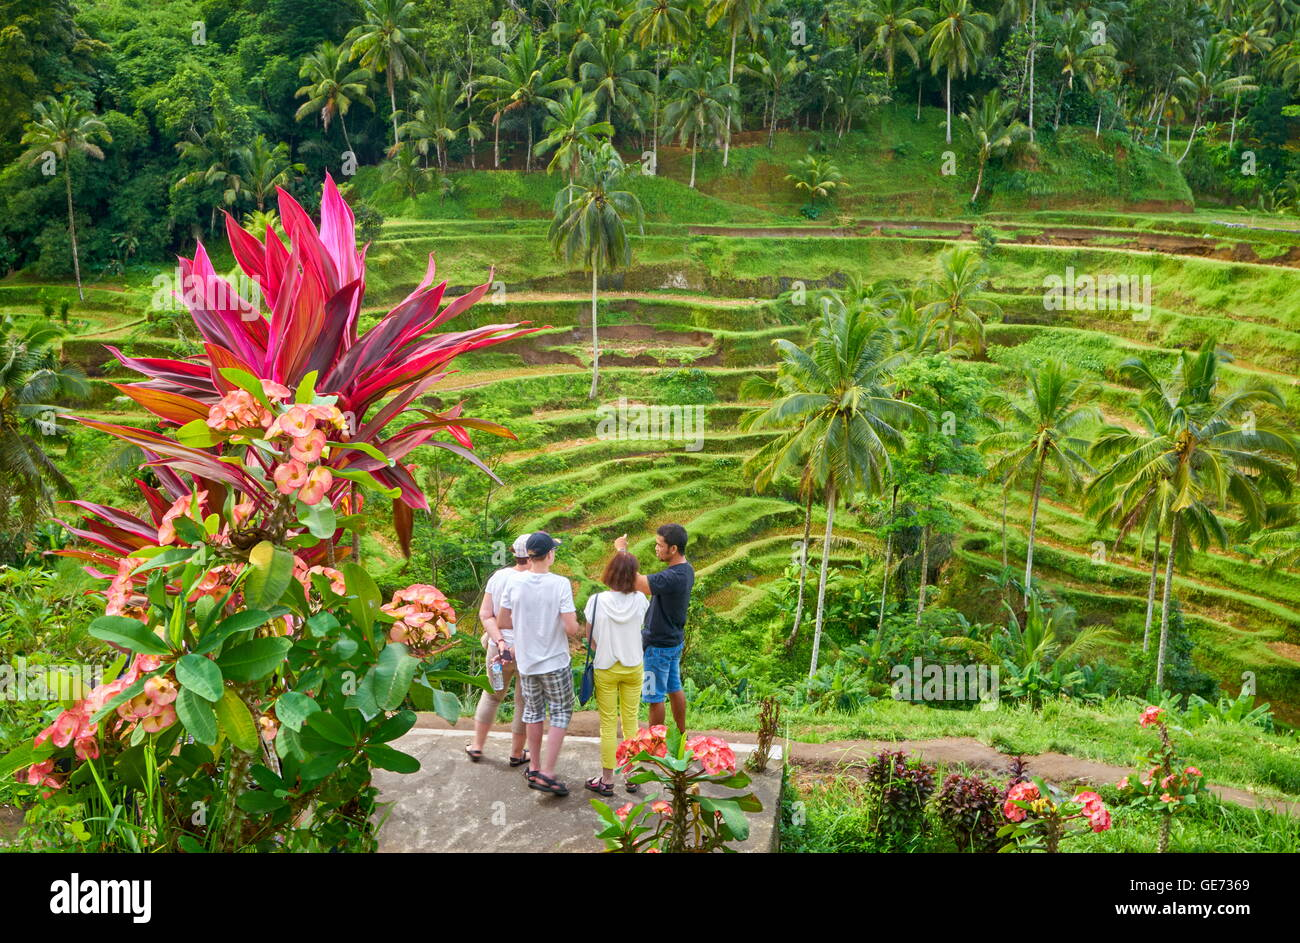 Bali, Indonesia - Tourists at the viewpoint of Rice Terrace Filed - Stock Image